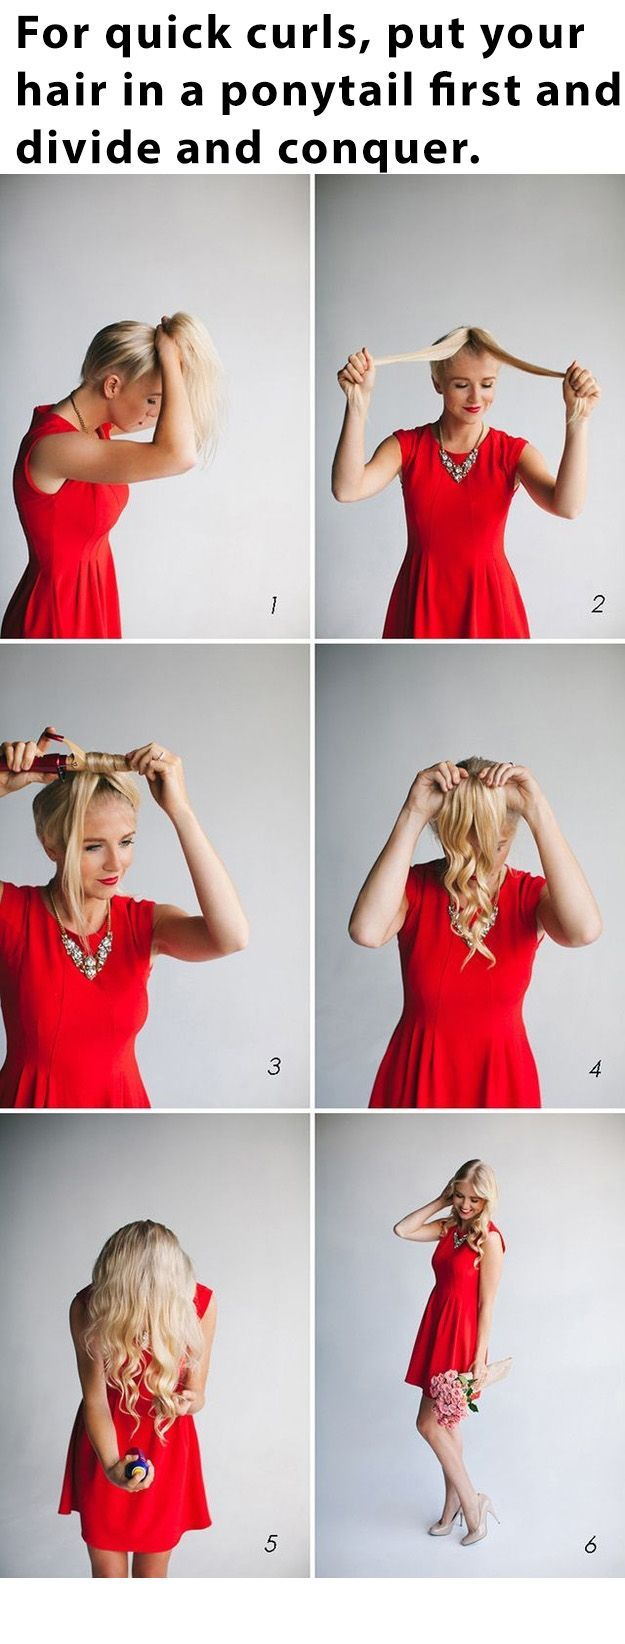 15 Easy Five-Minute Hairsdos That Will Transform Your Morning Routine